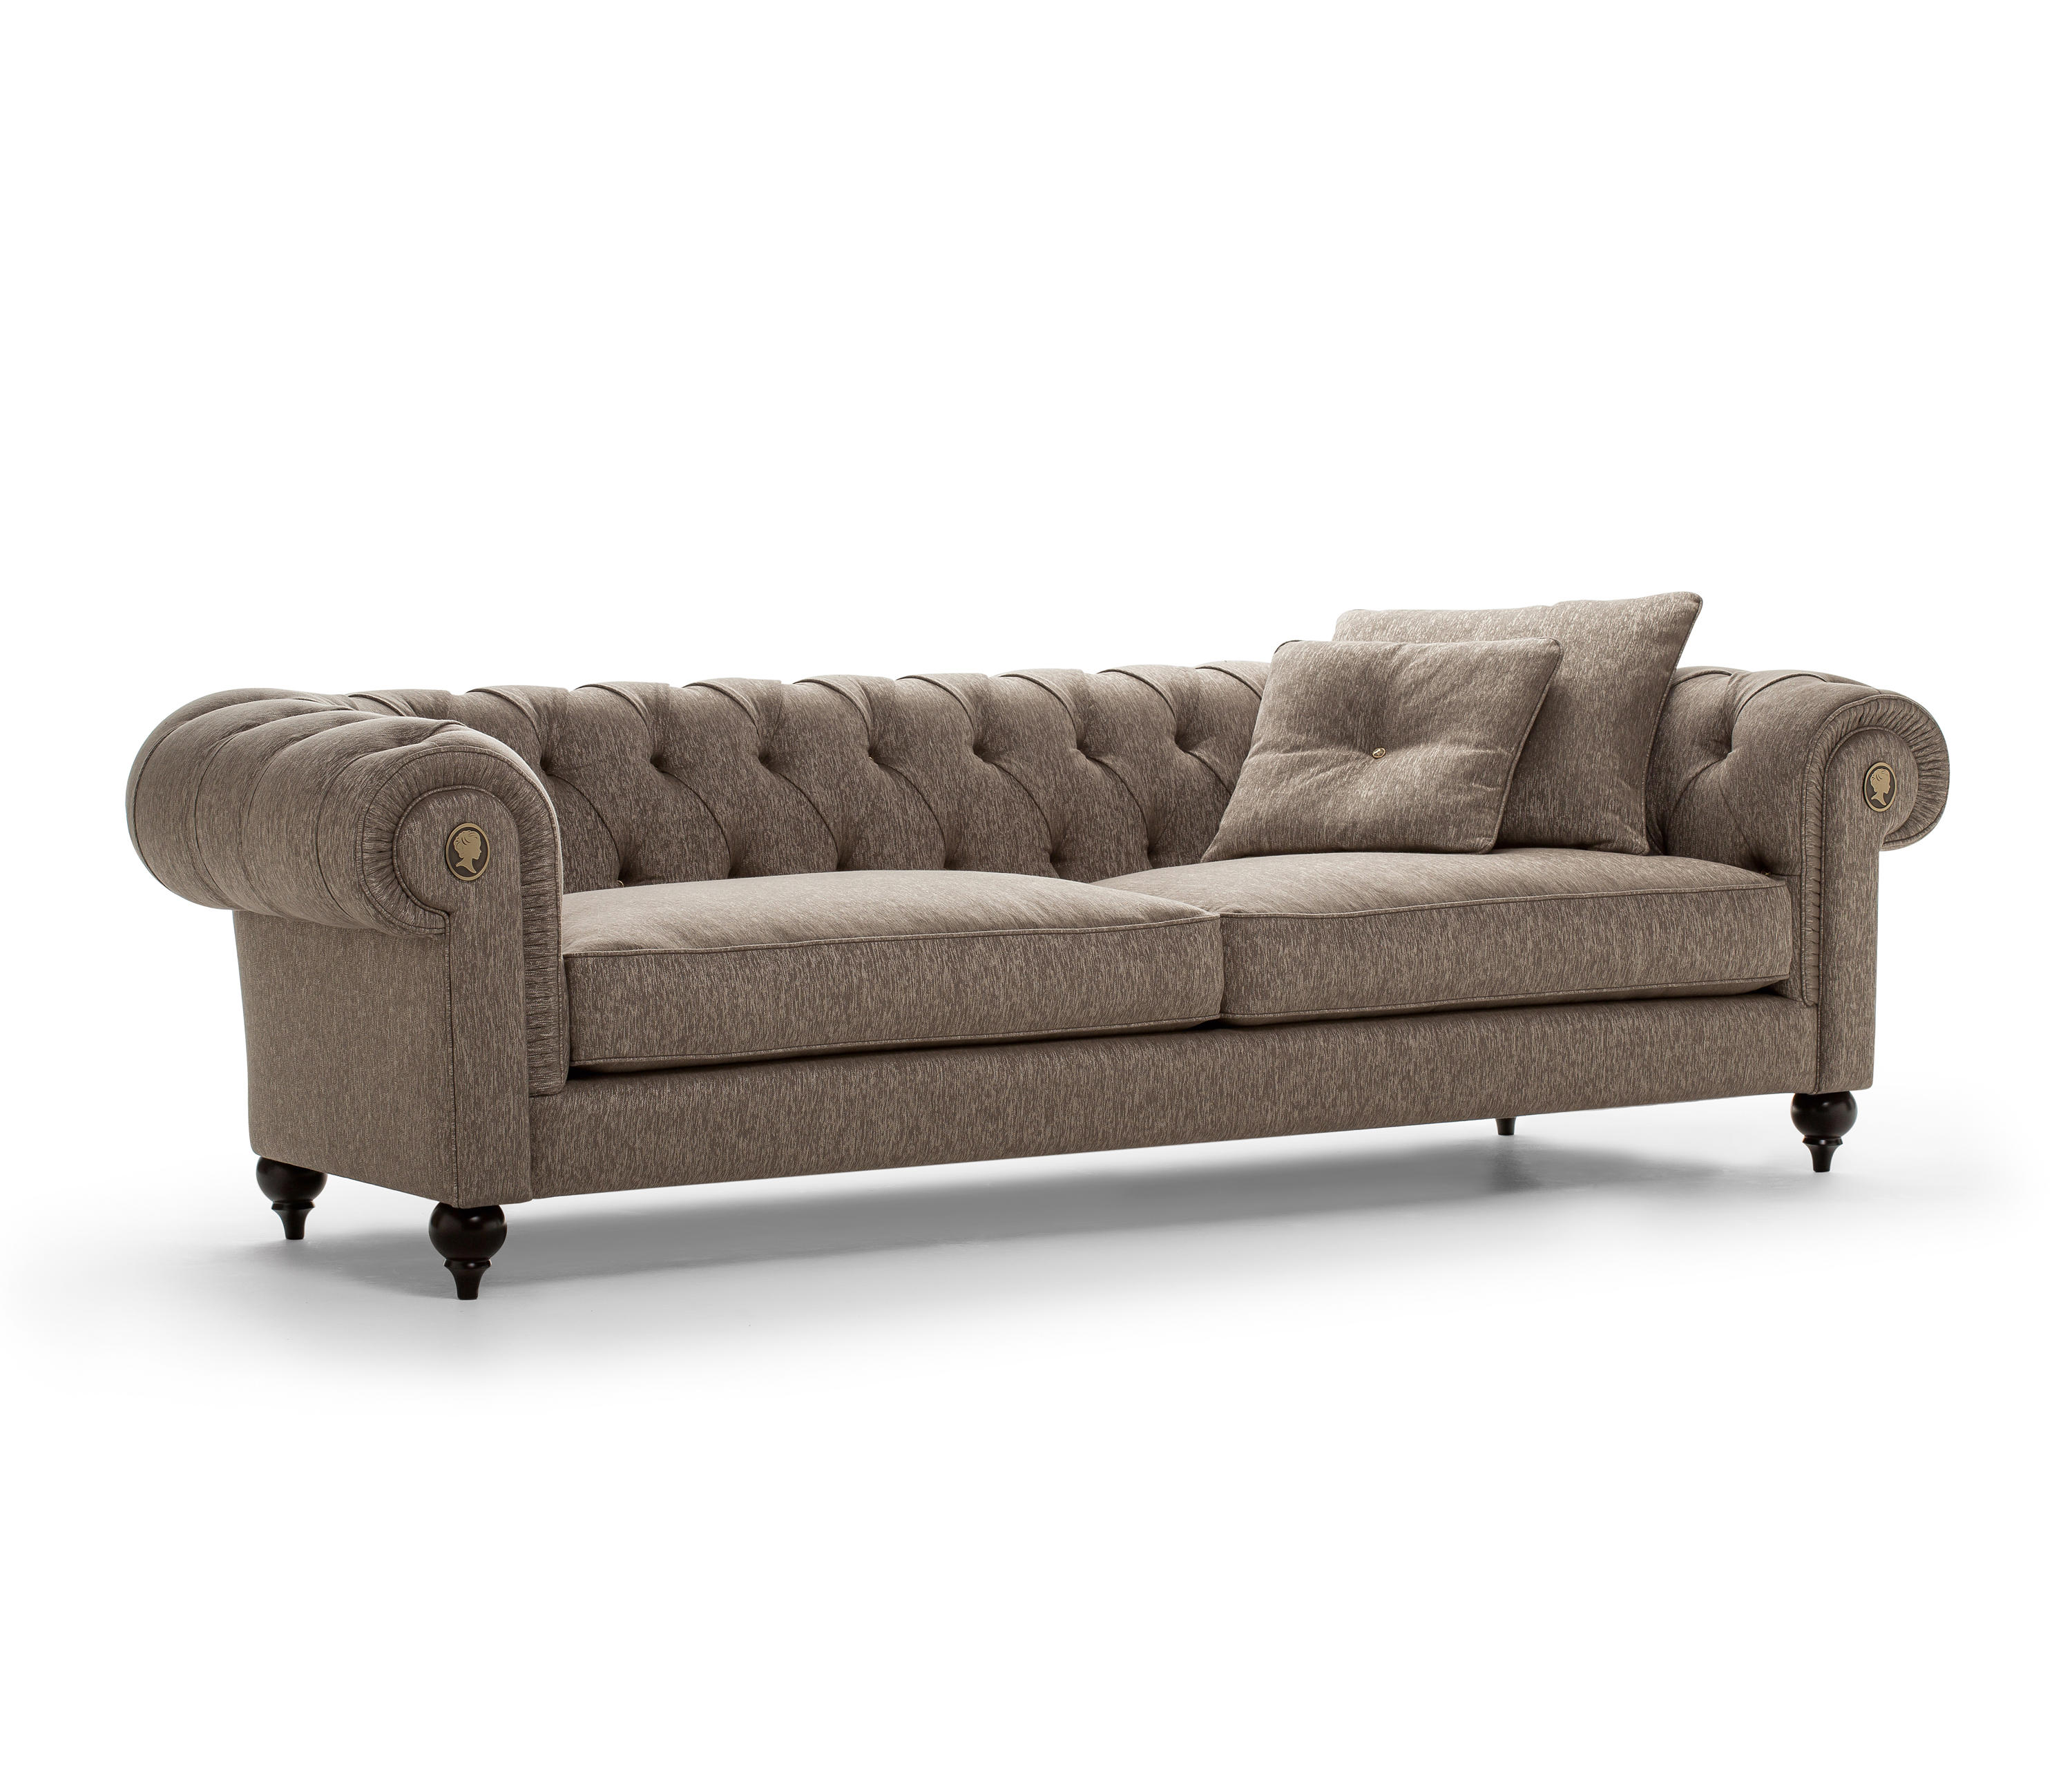 ALFRED SOFA Sofas from Alberta Pacific Furniture